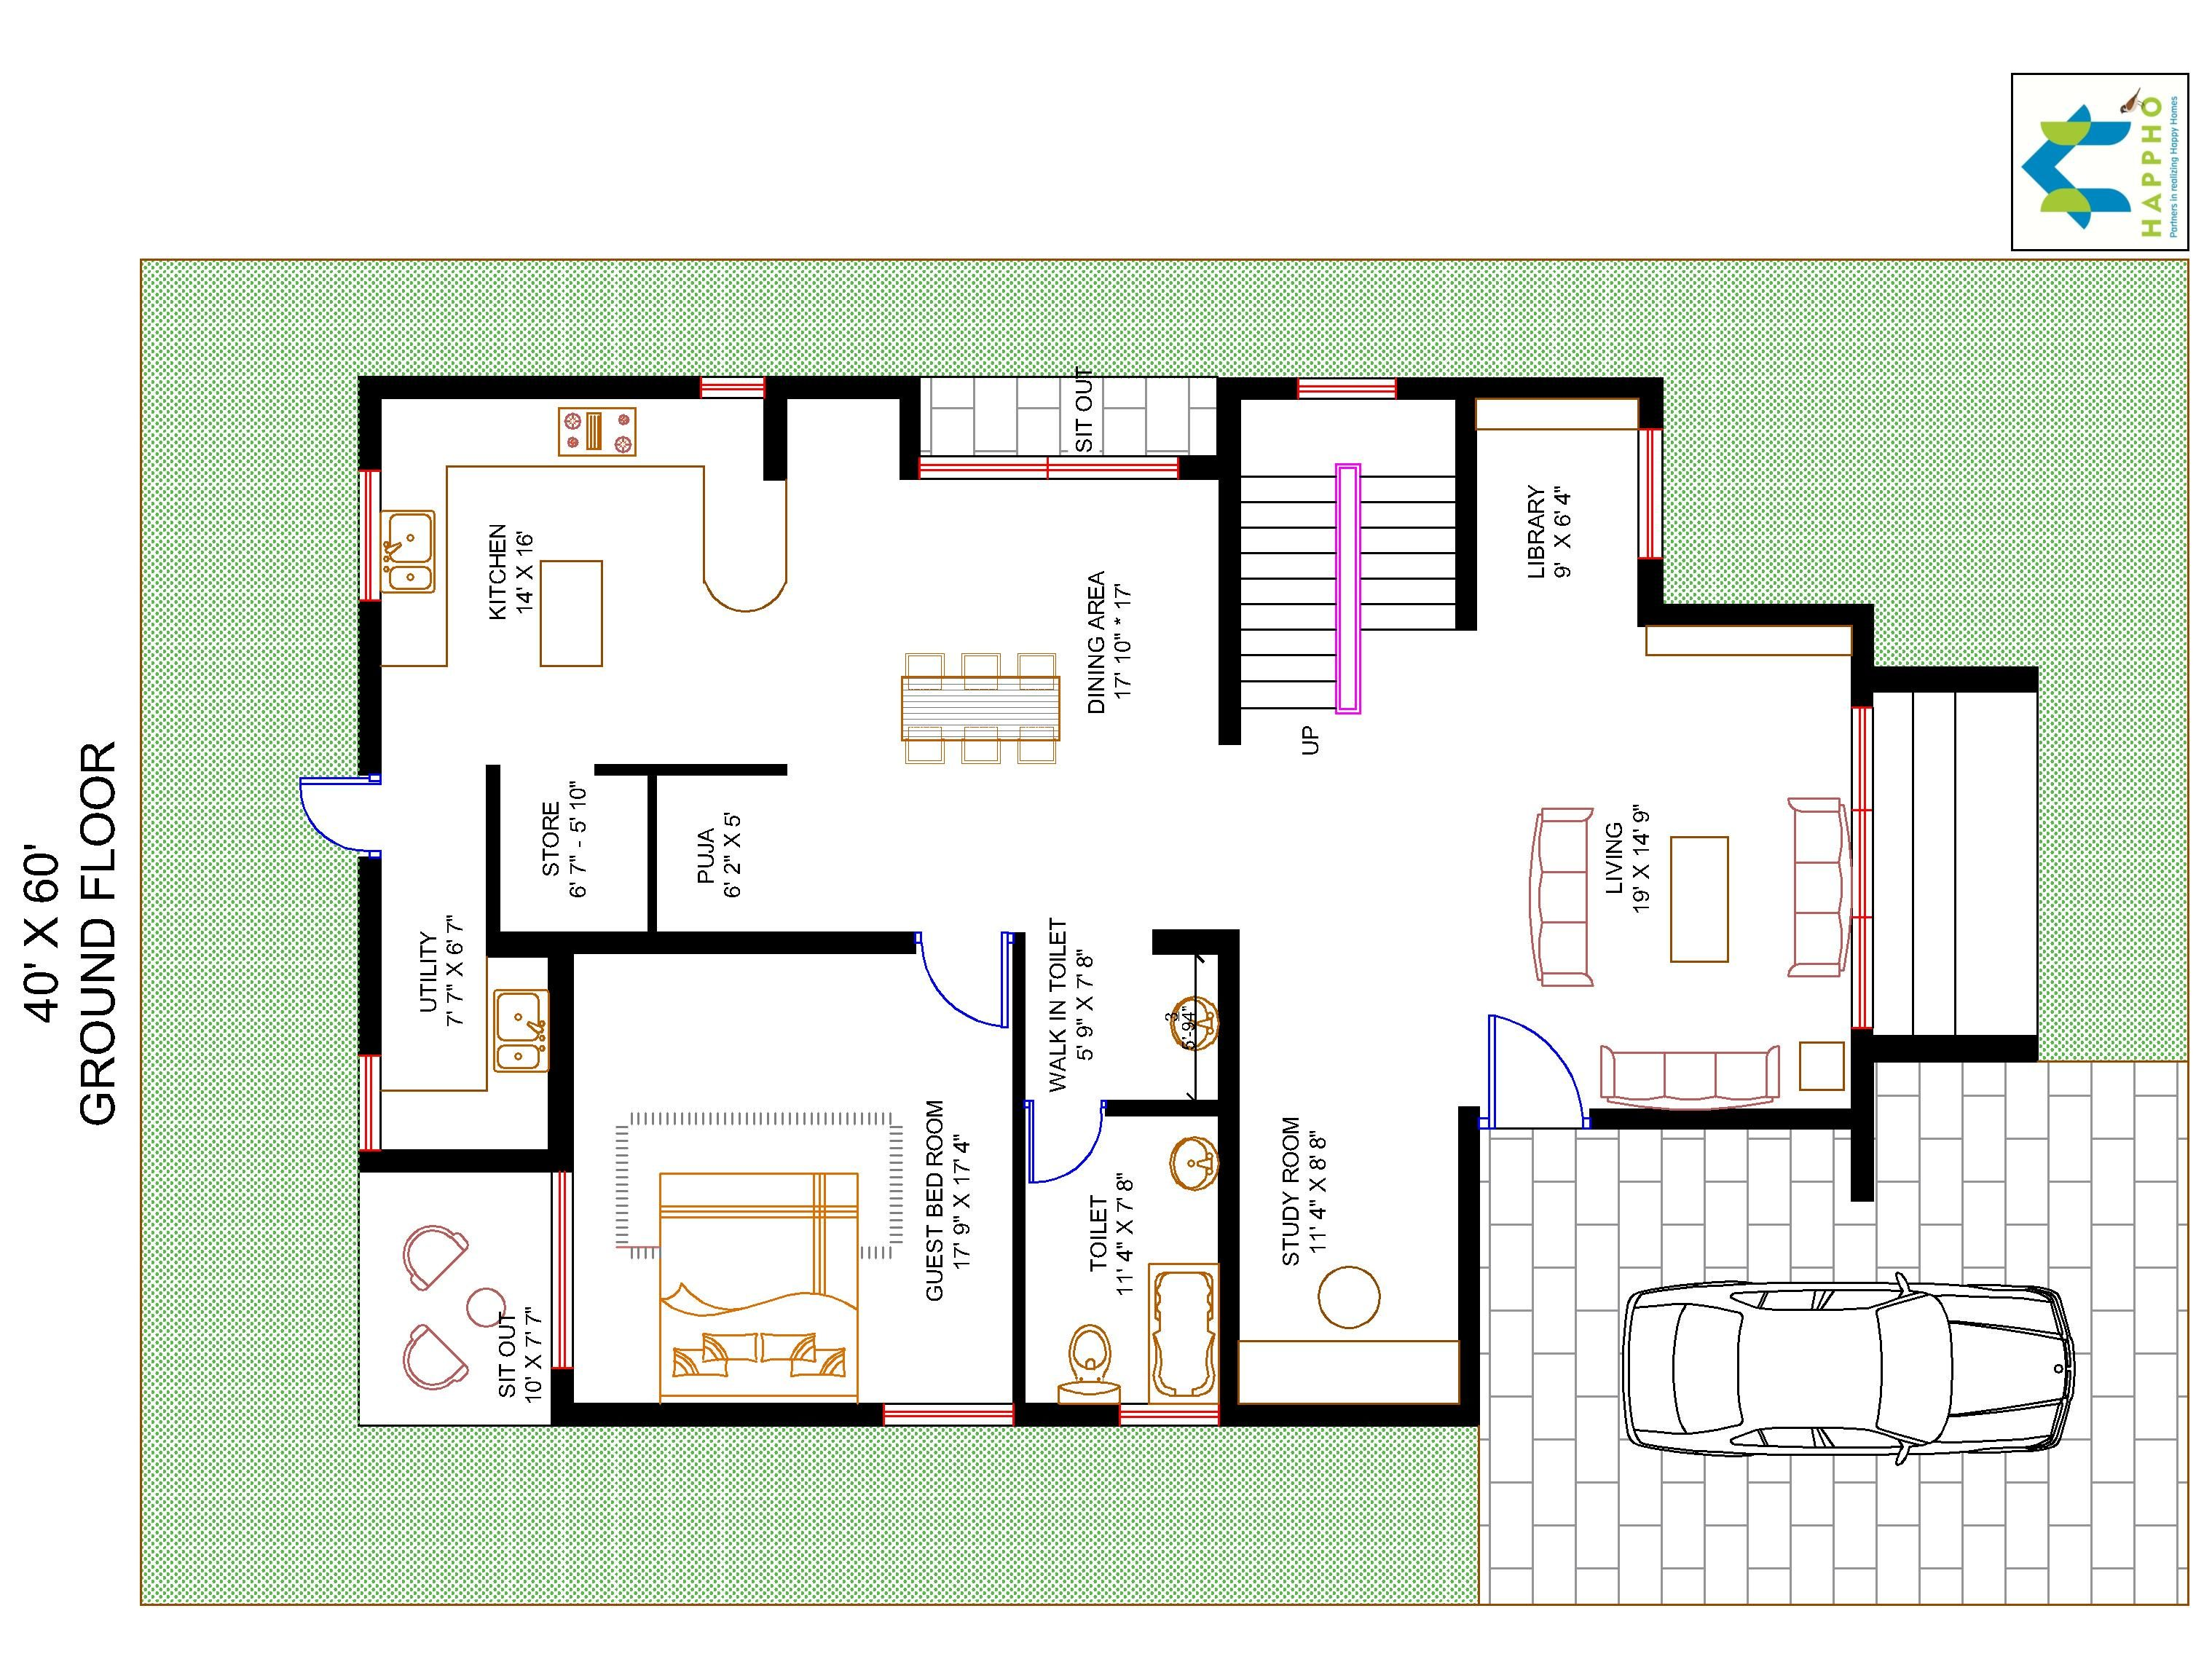 3 Bhk Floor Plan For 40 X 60 Plot 2400 Square Feet 266